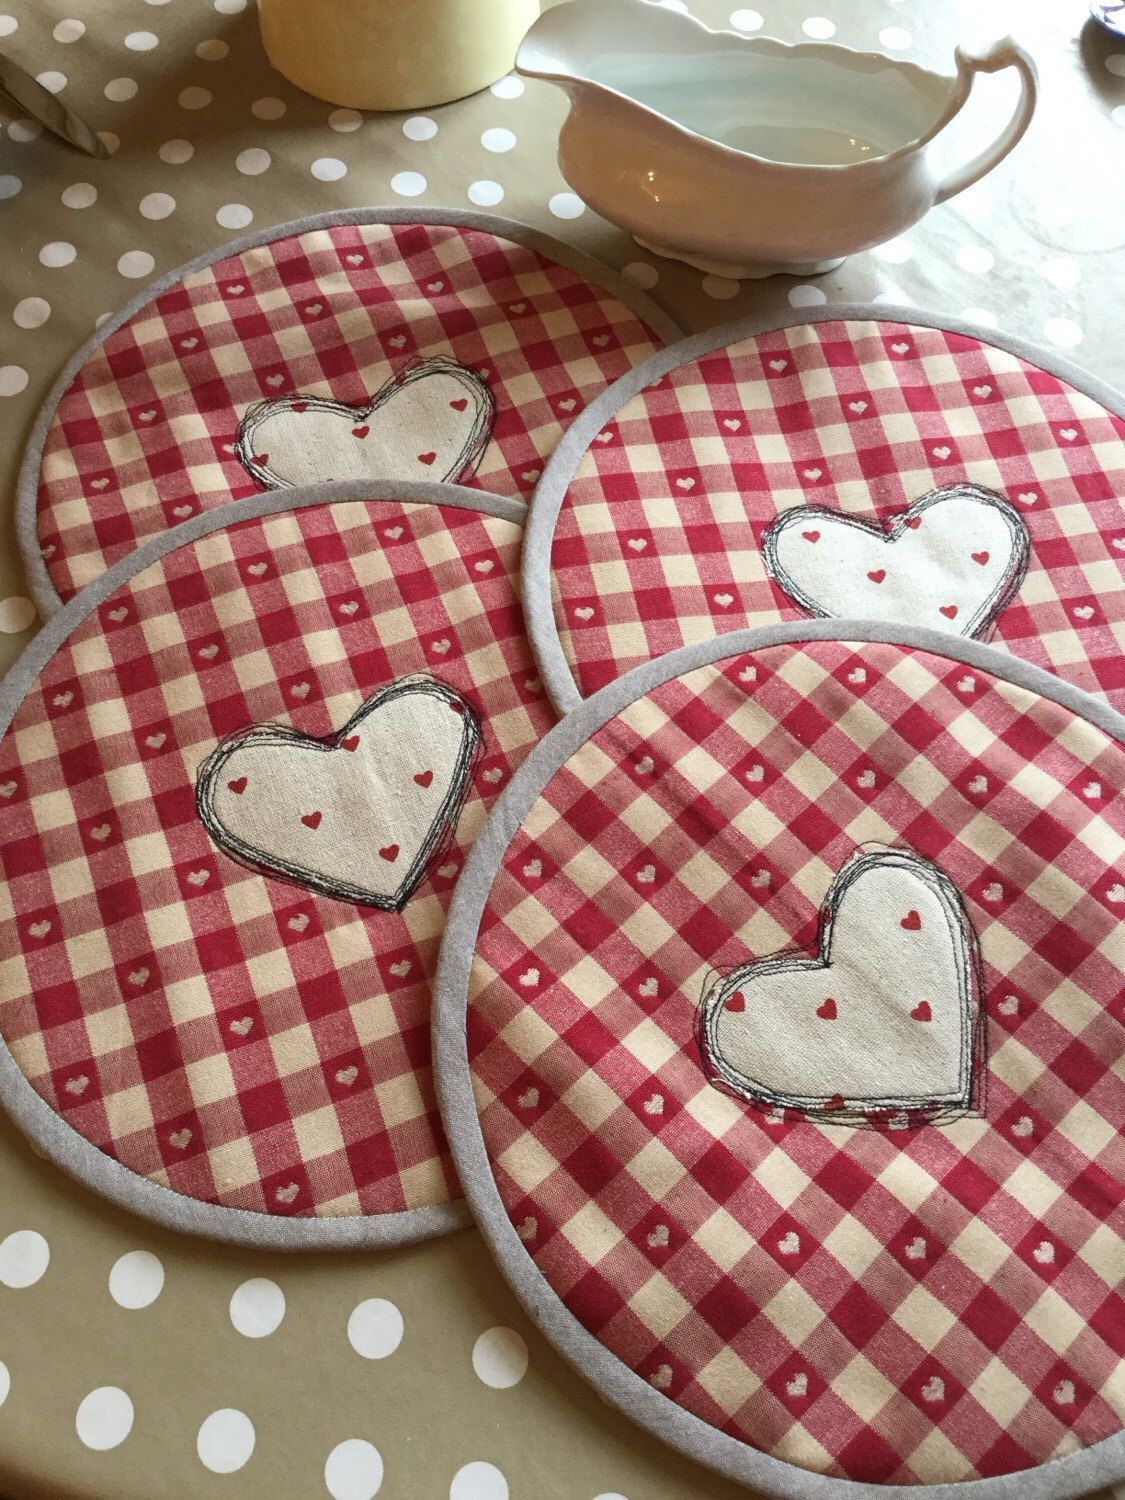 Items similar to Table mats, Shabby chic, Mother's Day Gift, Heart placemats, Kitchenelia, Table place settings, Linens, Kitchen ware, Dining, Accessories, on Etsy